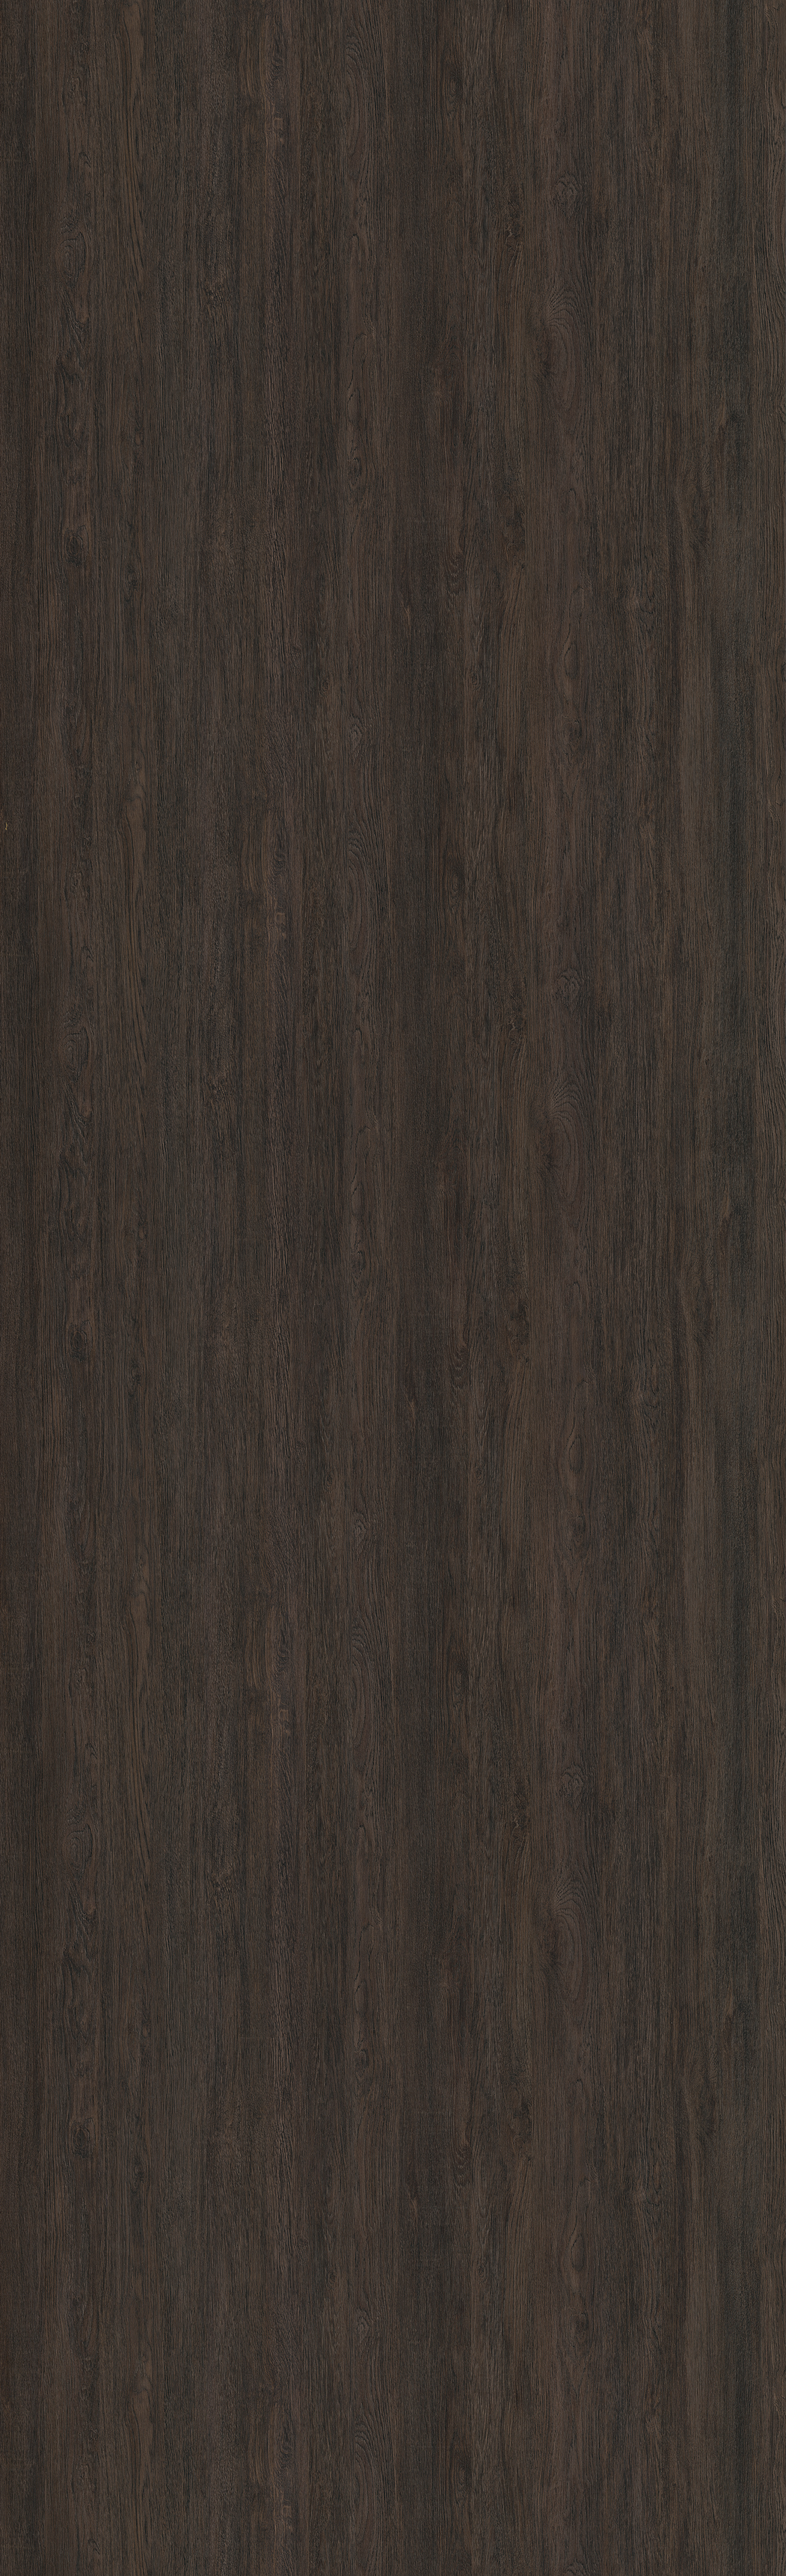 Coverstyl Wood Decorative Wood Finish Ebony Light Brown